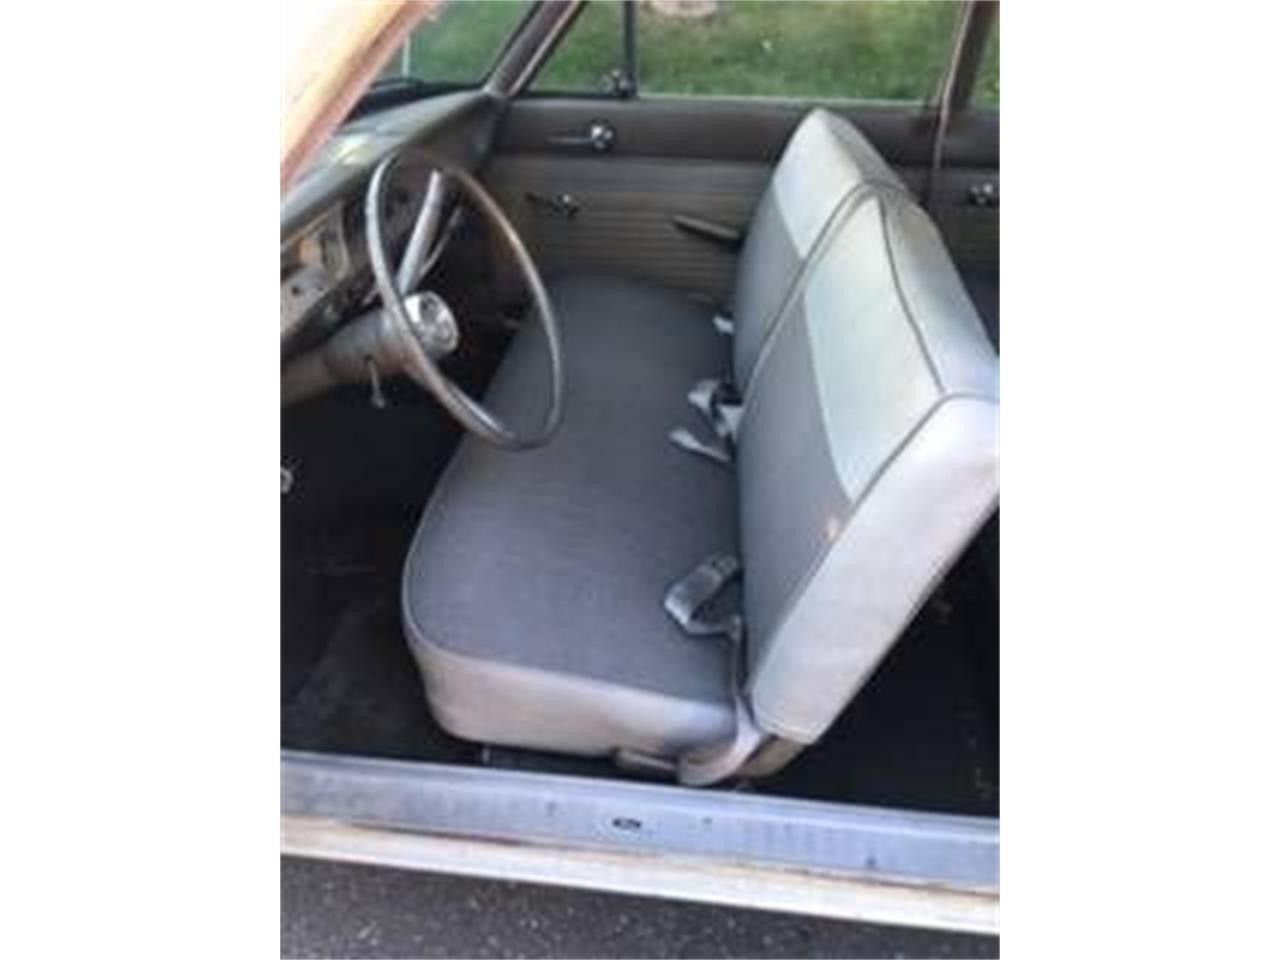 Large Picture of Classic '64 Ford Falcon located in Michigan - $6,995.00 Offered by Classic Car Deals - QCAW